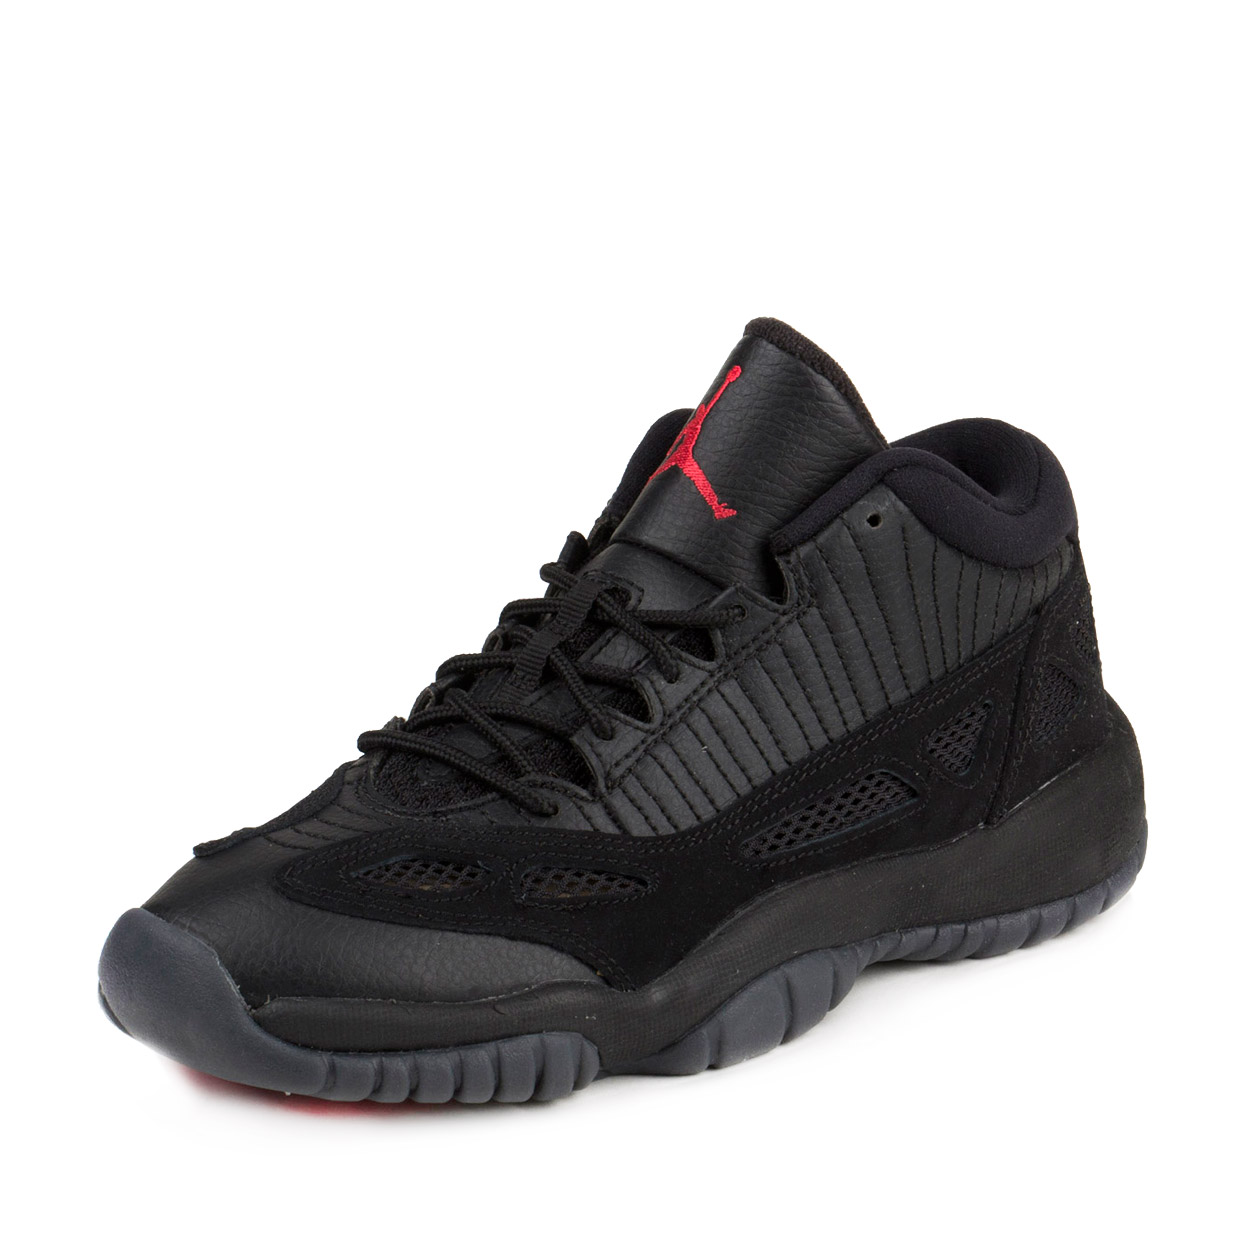 b414bdb55c2f ... buy nike mens air jordan 11 retro low bg referee black true red 3e806  b726f